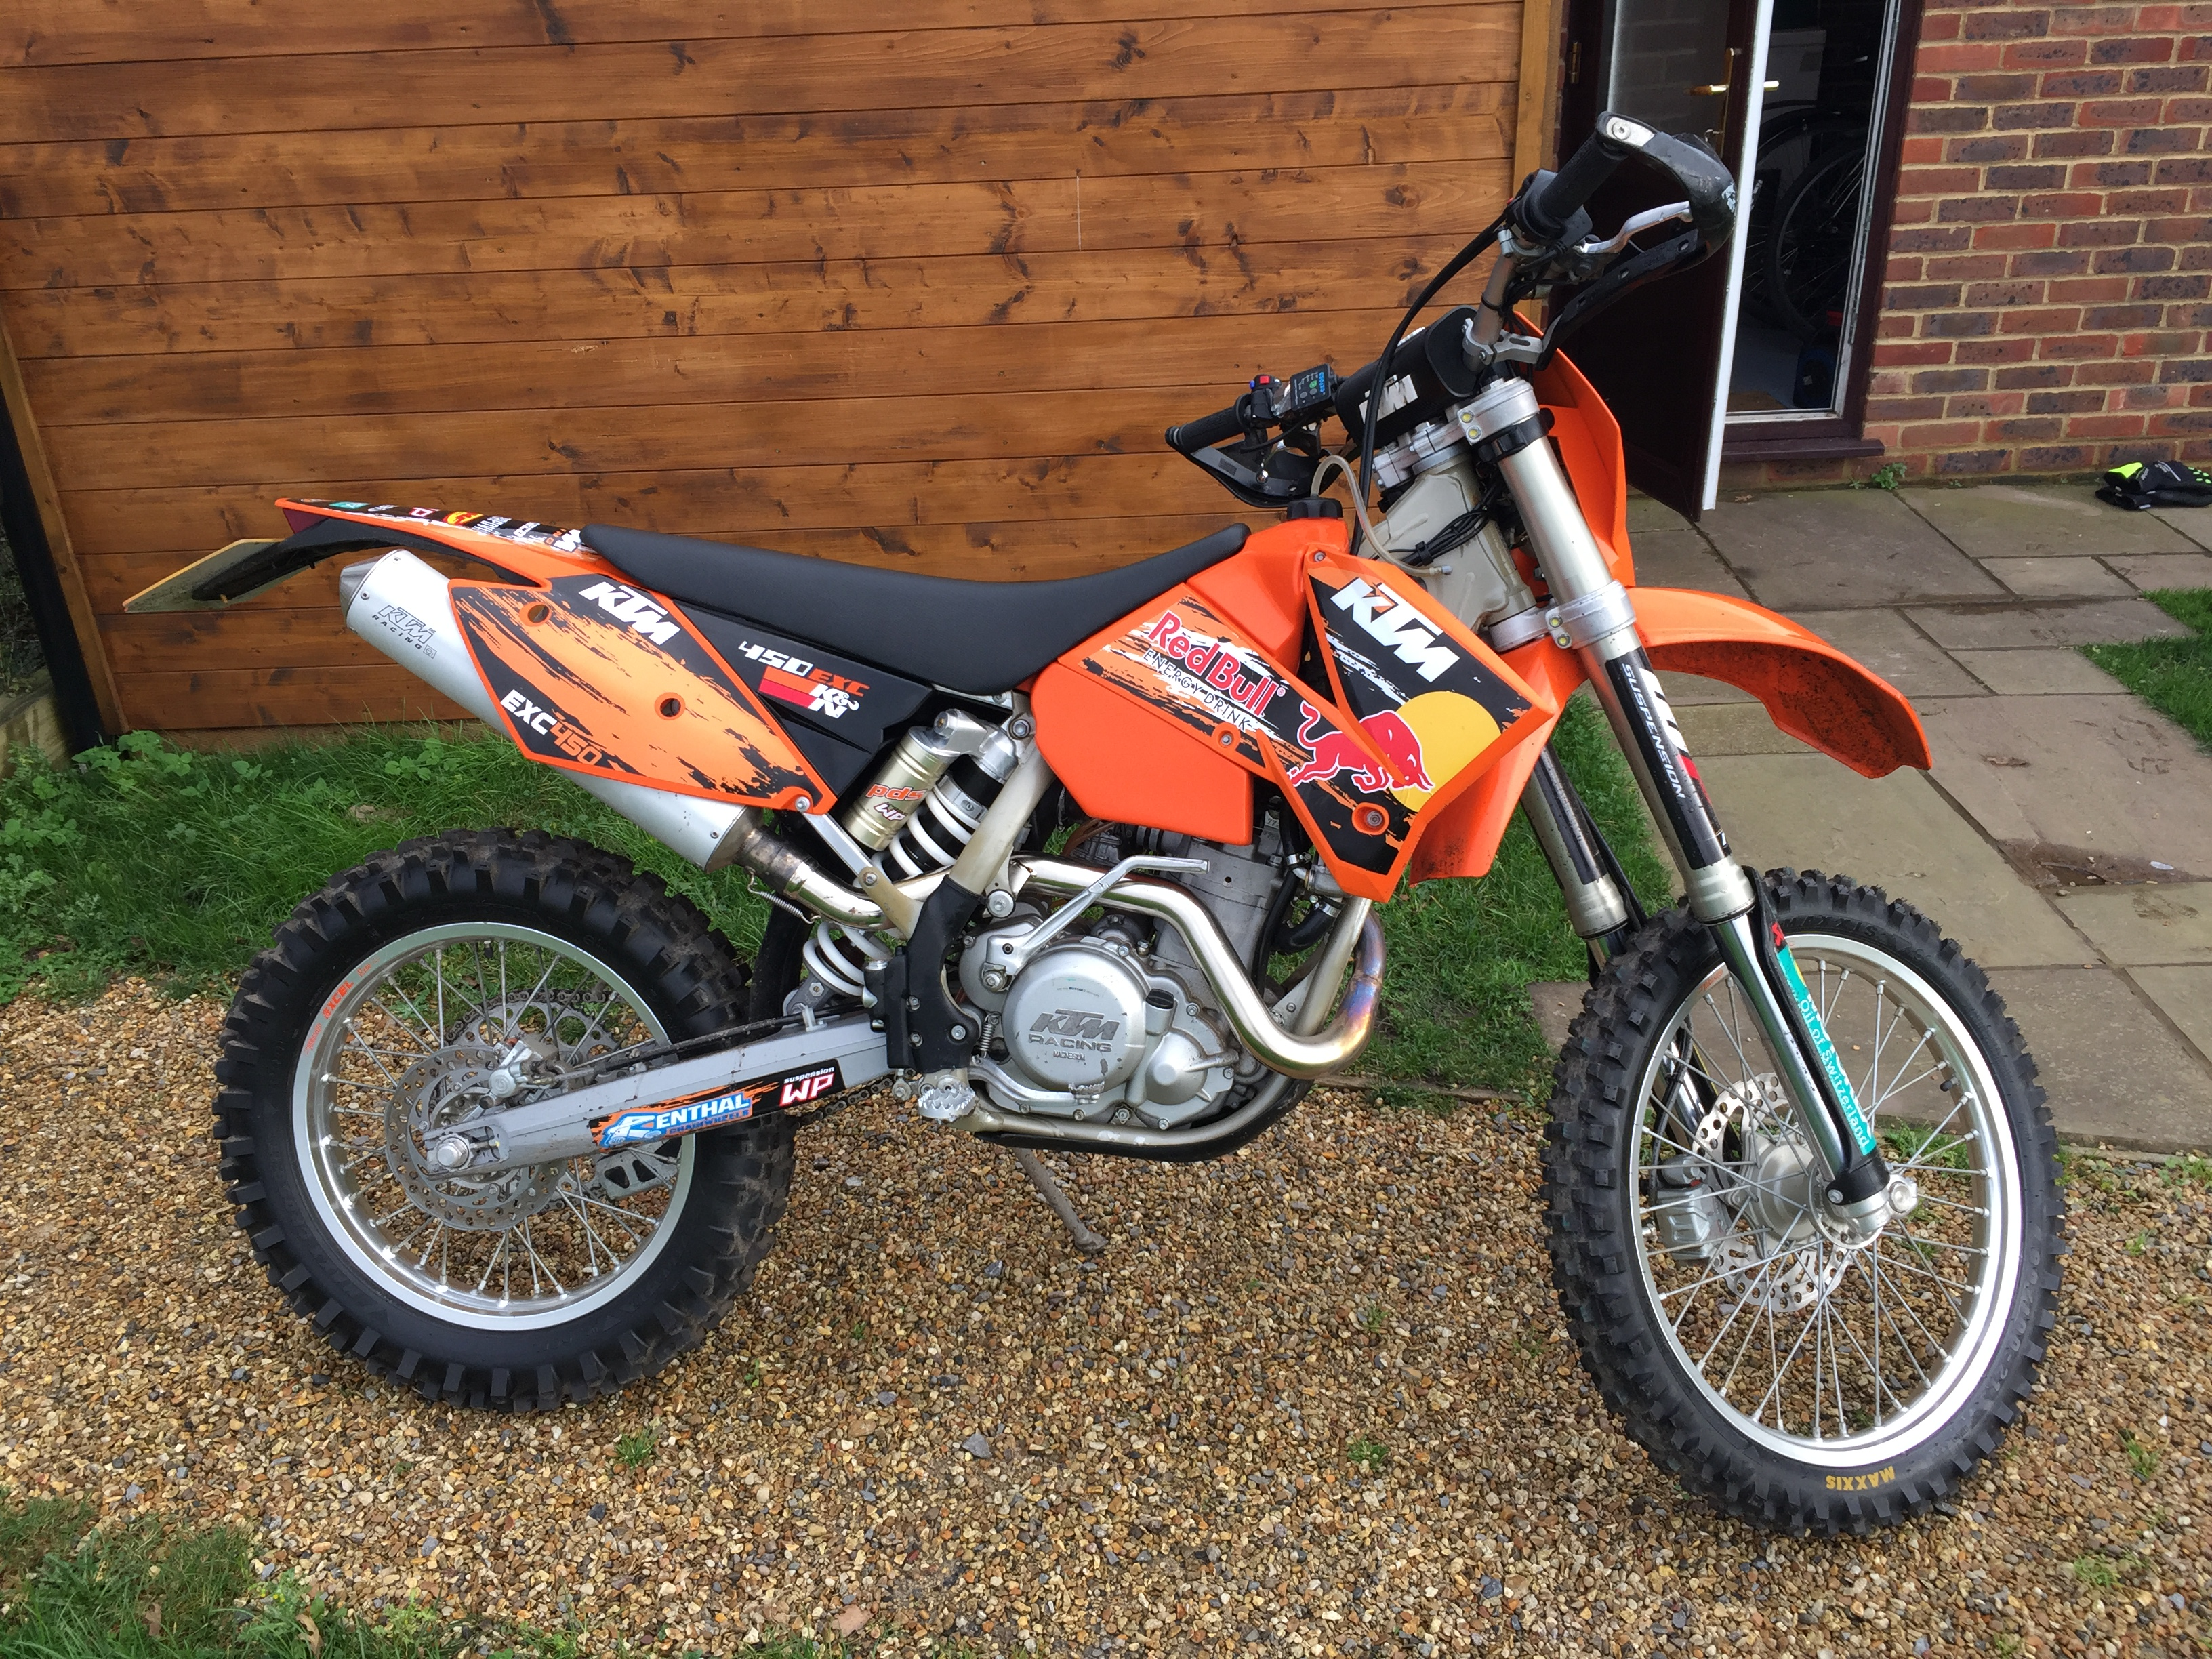 KTM 300 MXC 2002 images #85466